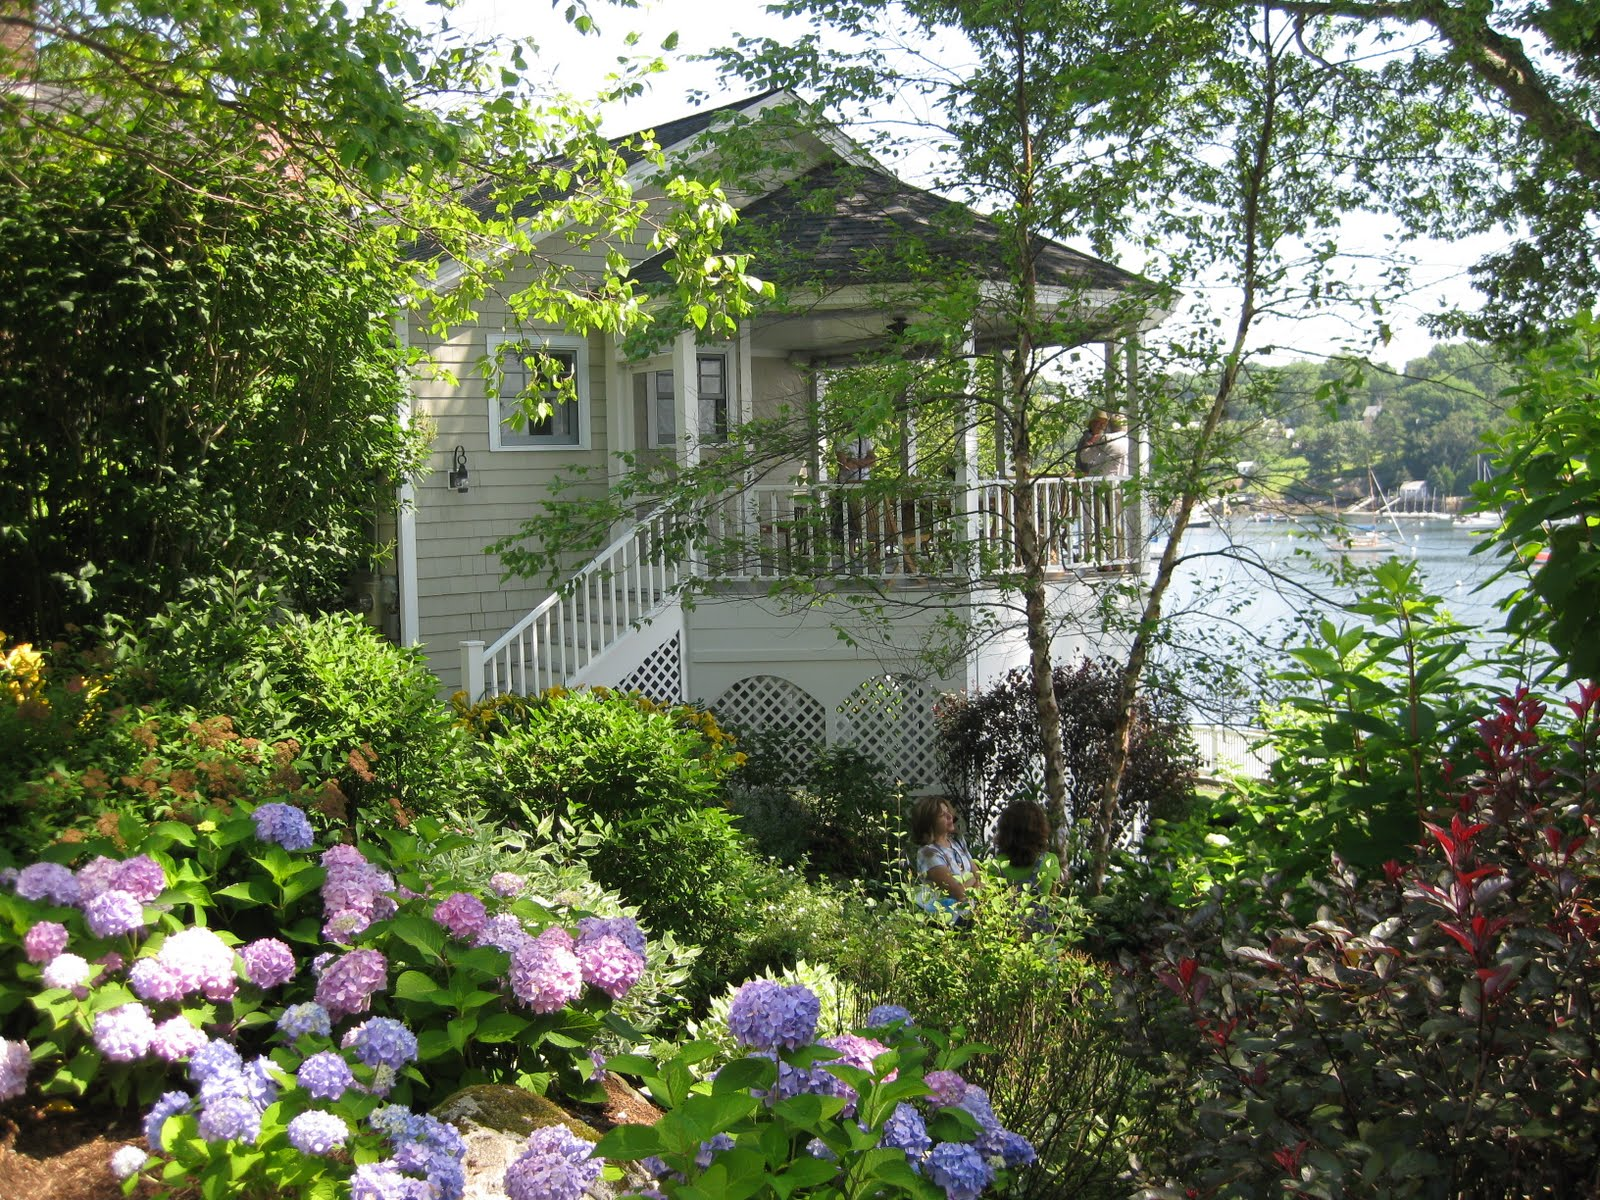 All the latest dirt camden maine house garden tour for Home and garden